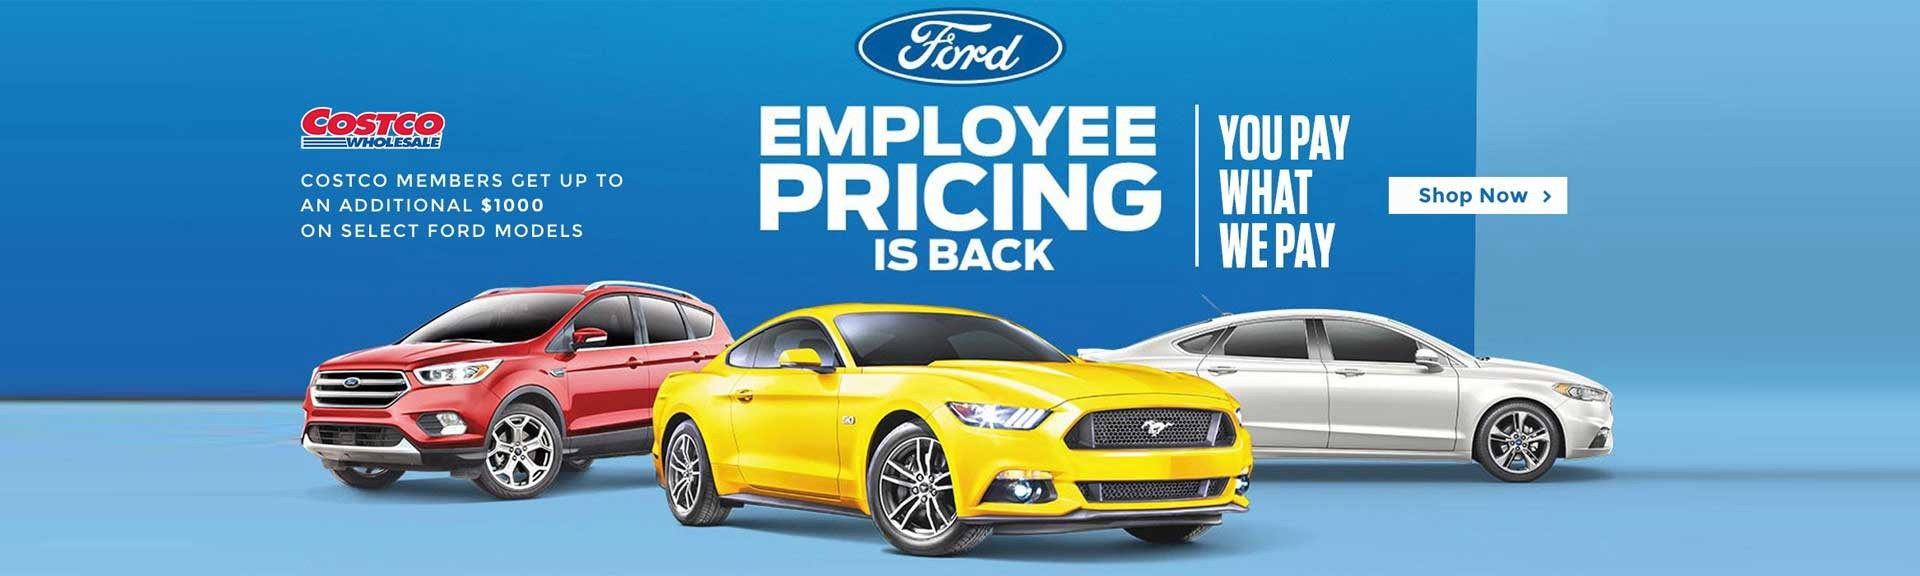 Employee Pricing - You Pay What We Pay